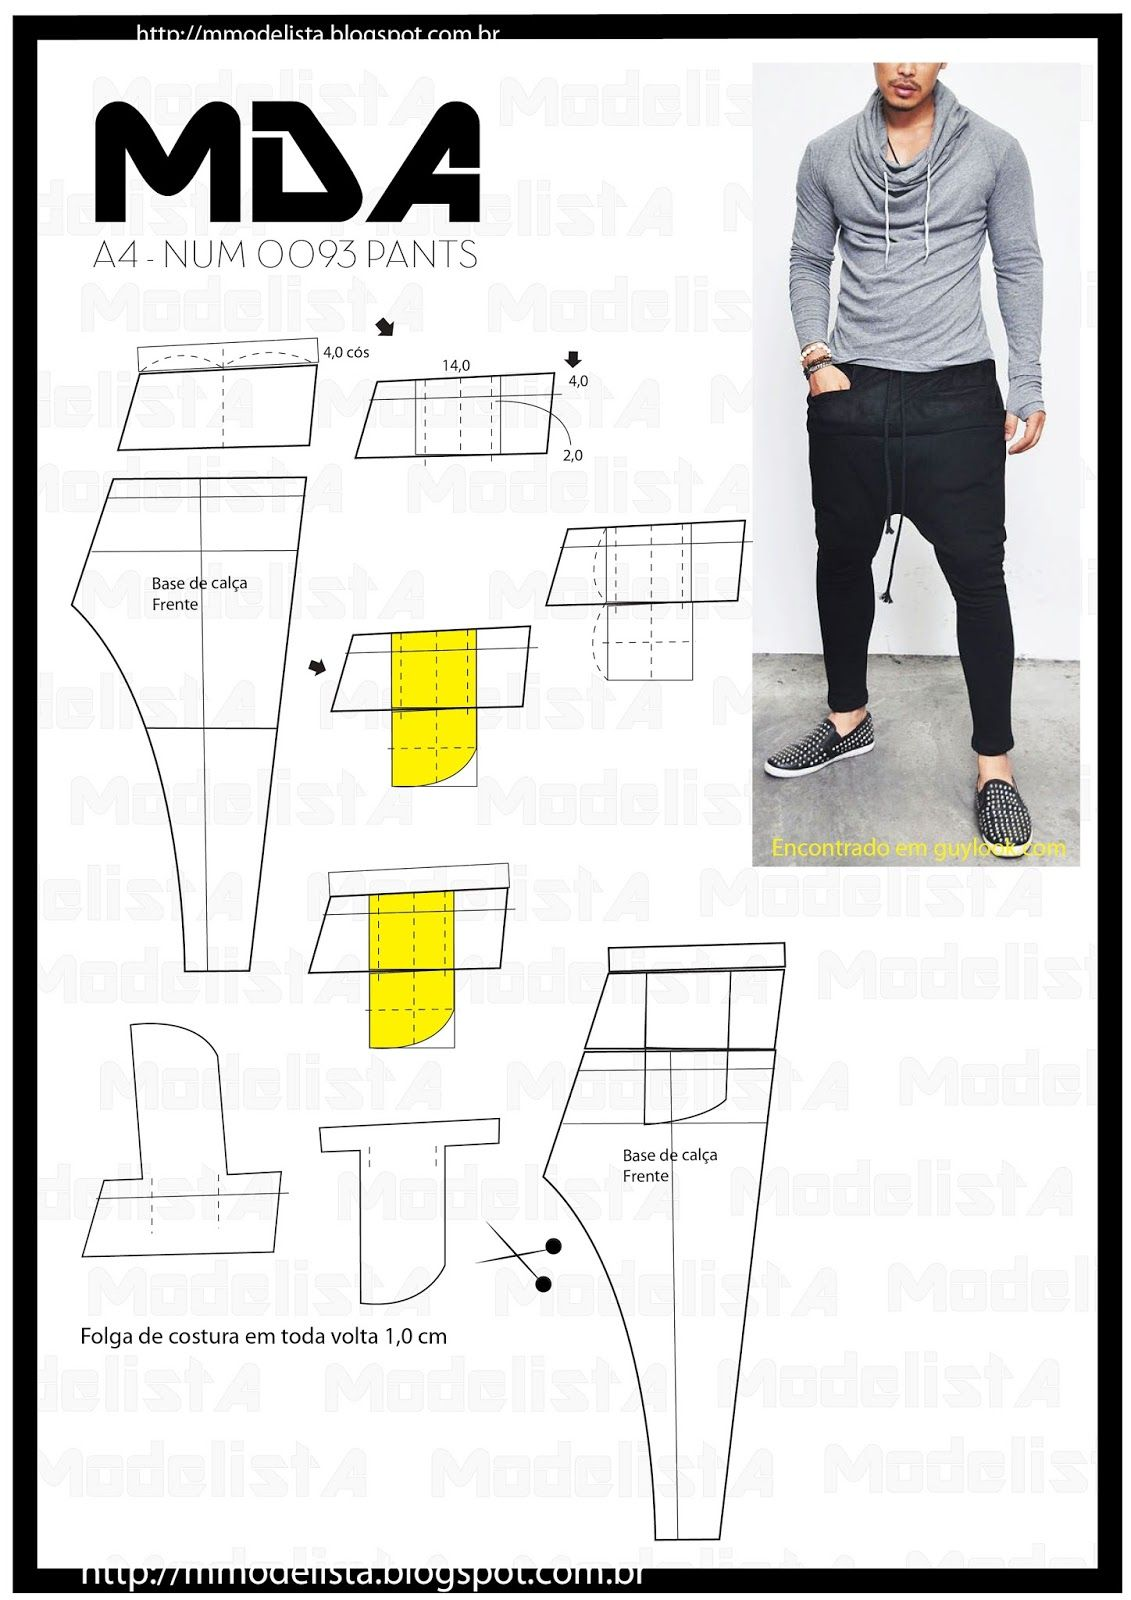 A4 NUM 0093 PANTS continua | costura | Pinterest | Pants, Sewing and ...